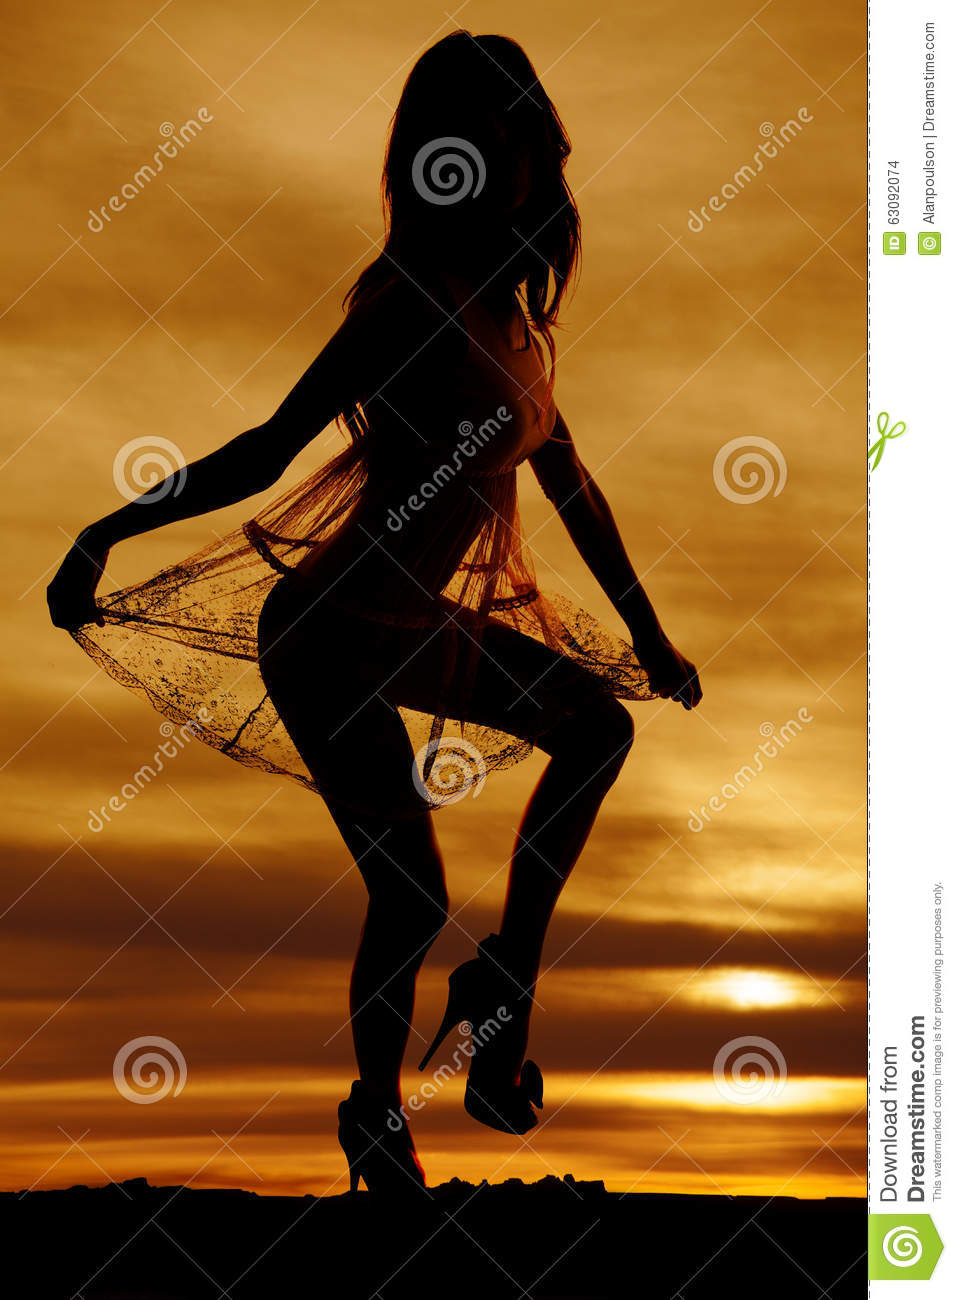 Download Femme De Silhouette Dans De Robe De Prise De Jupe Le Genou Pur Photo stock - Image du mode, lacet: 63092074